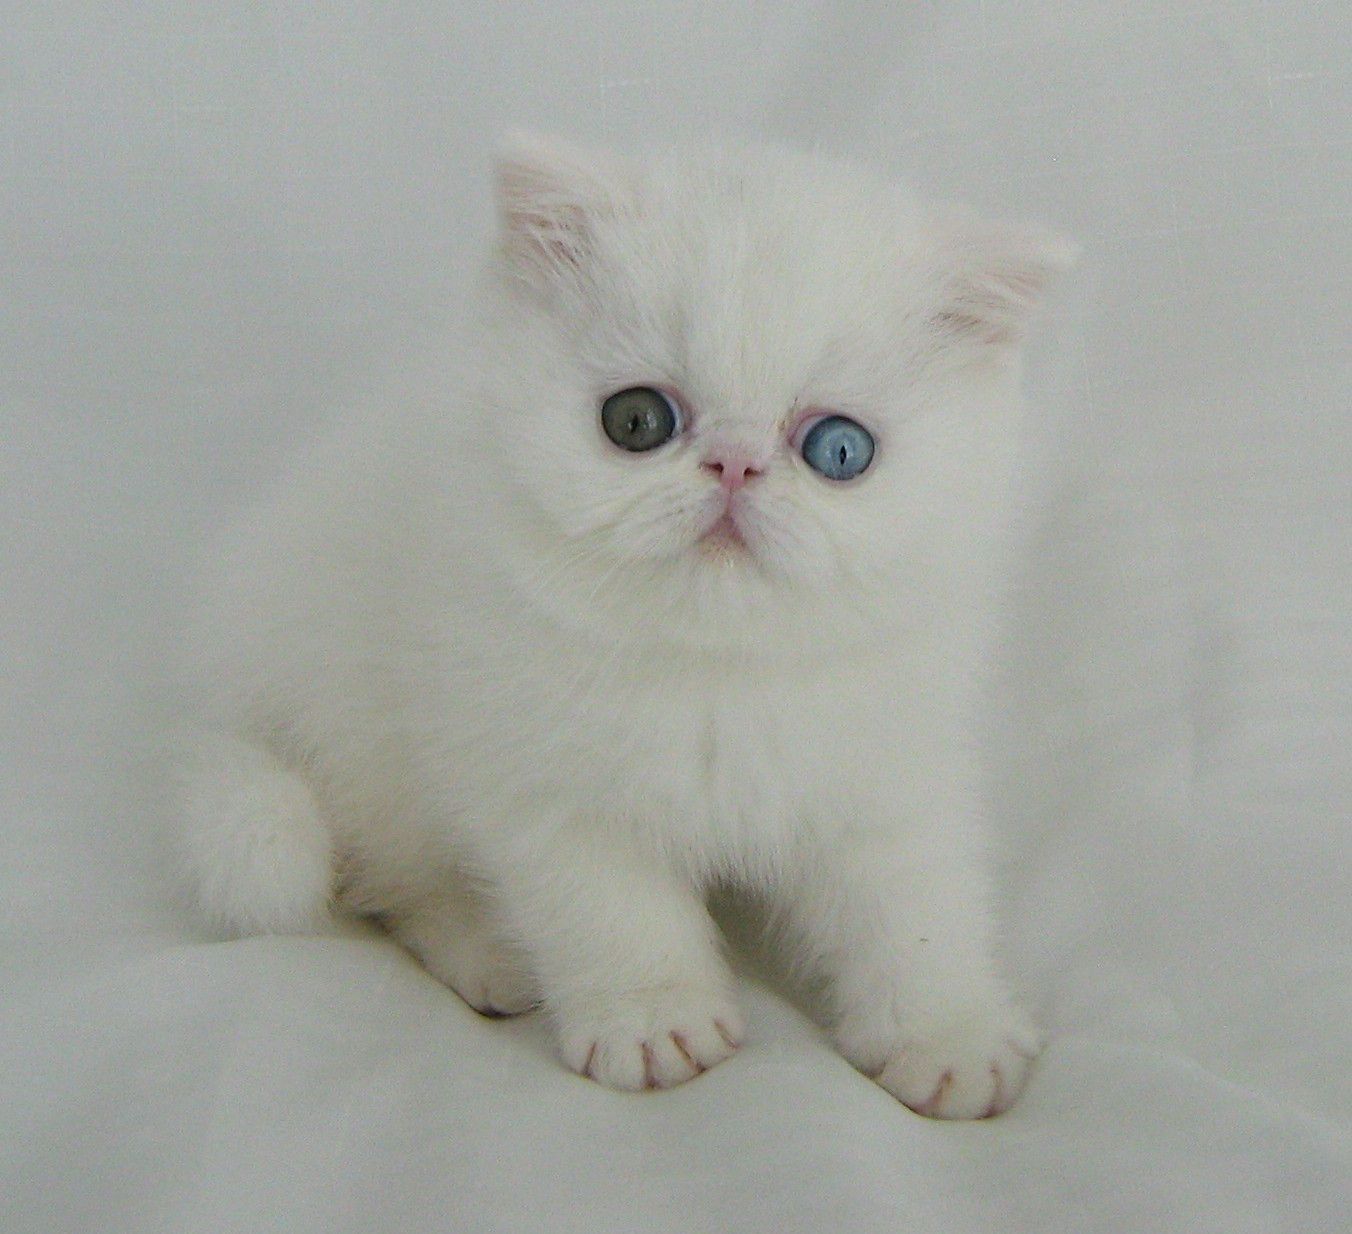 Exotic Shorthair - Cat, Kittens, Facts, Personality